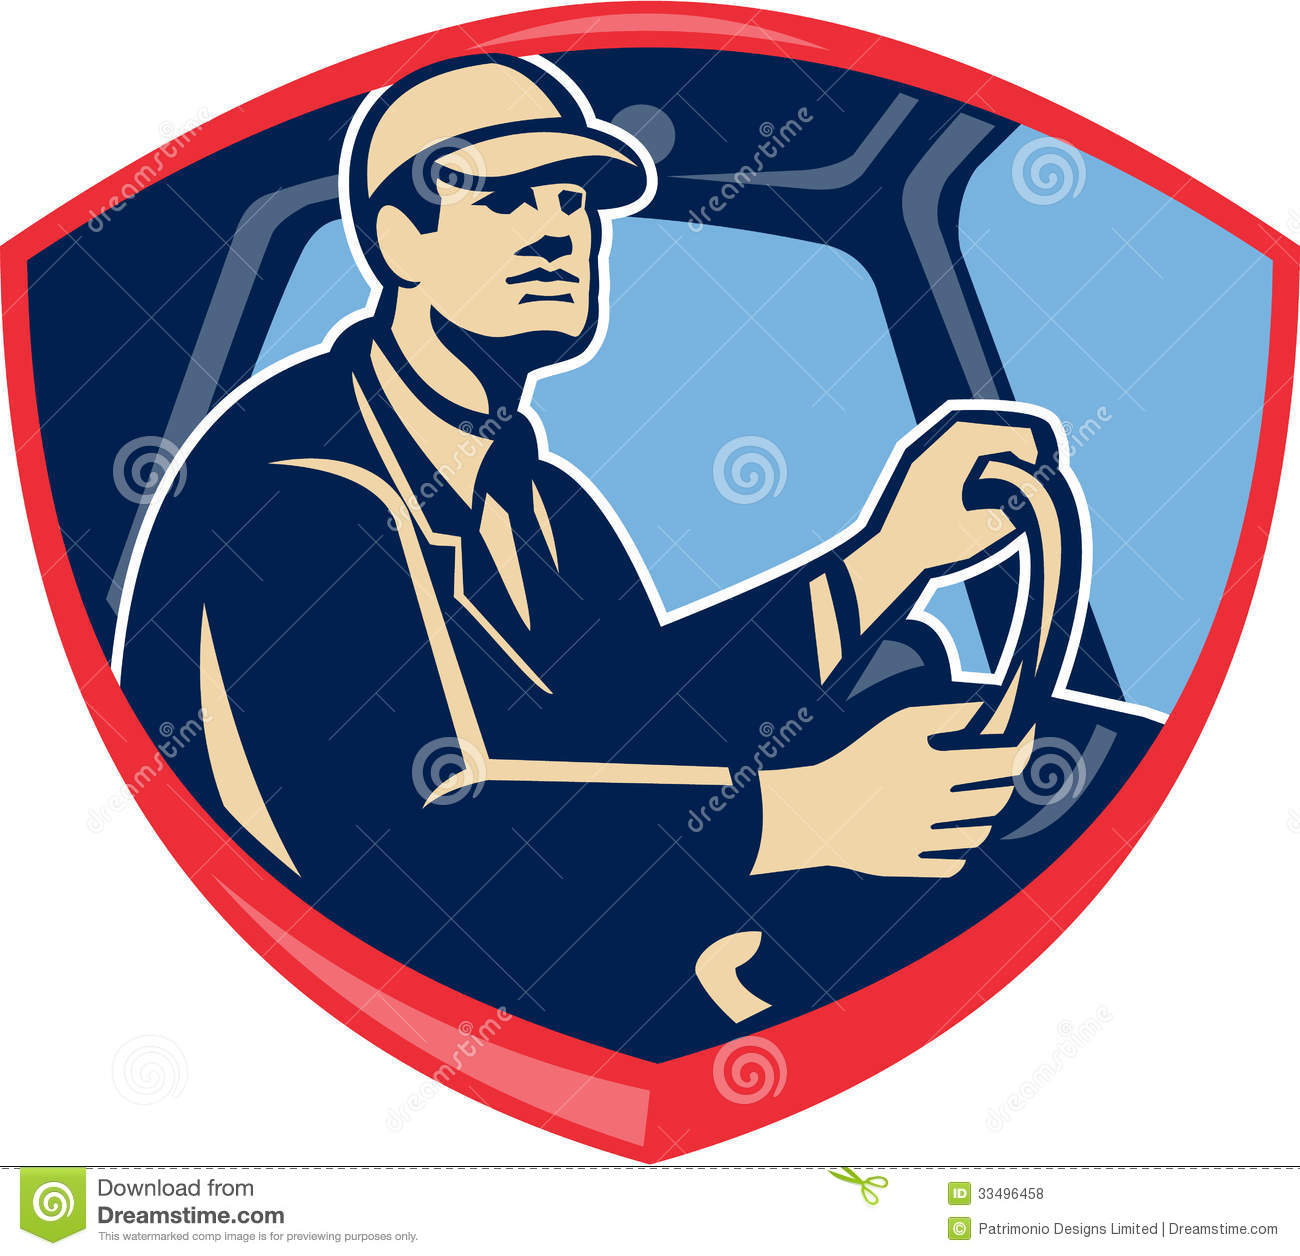 Illustration Of A Bus Or Truck Driver Driver Inside Vehicle Viewed